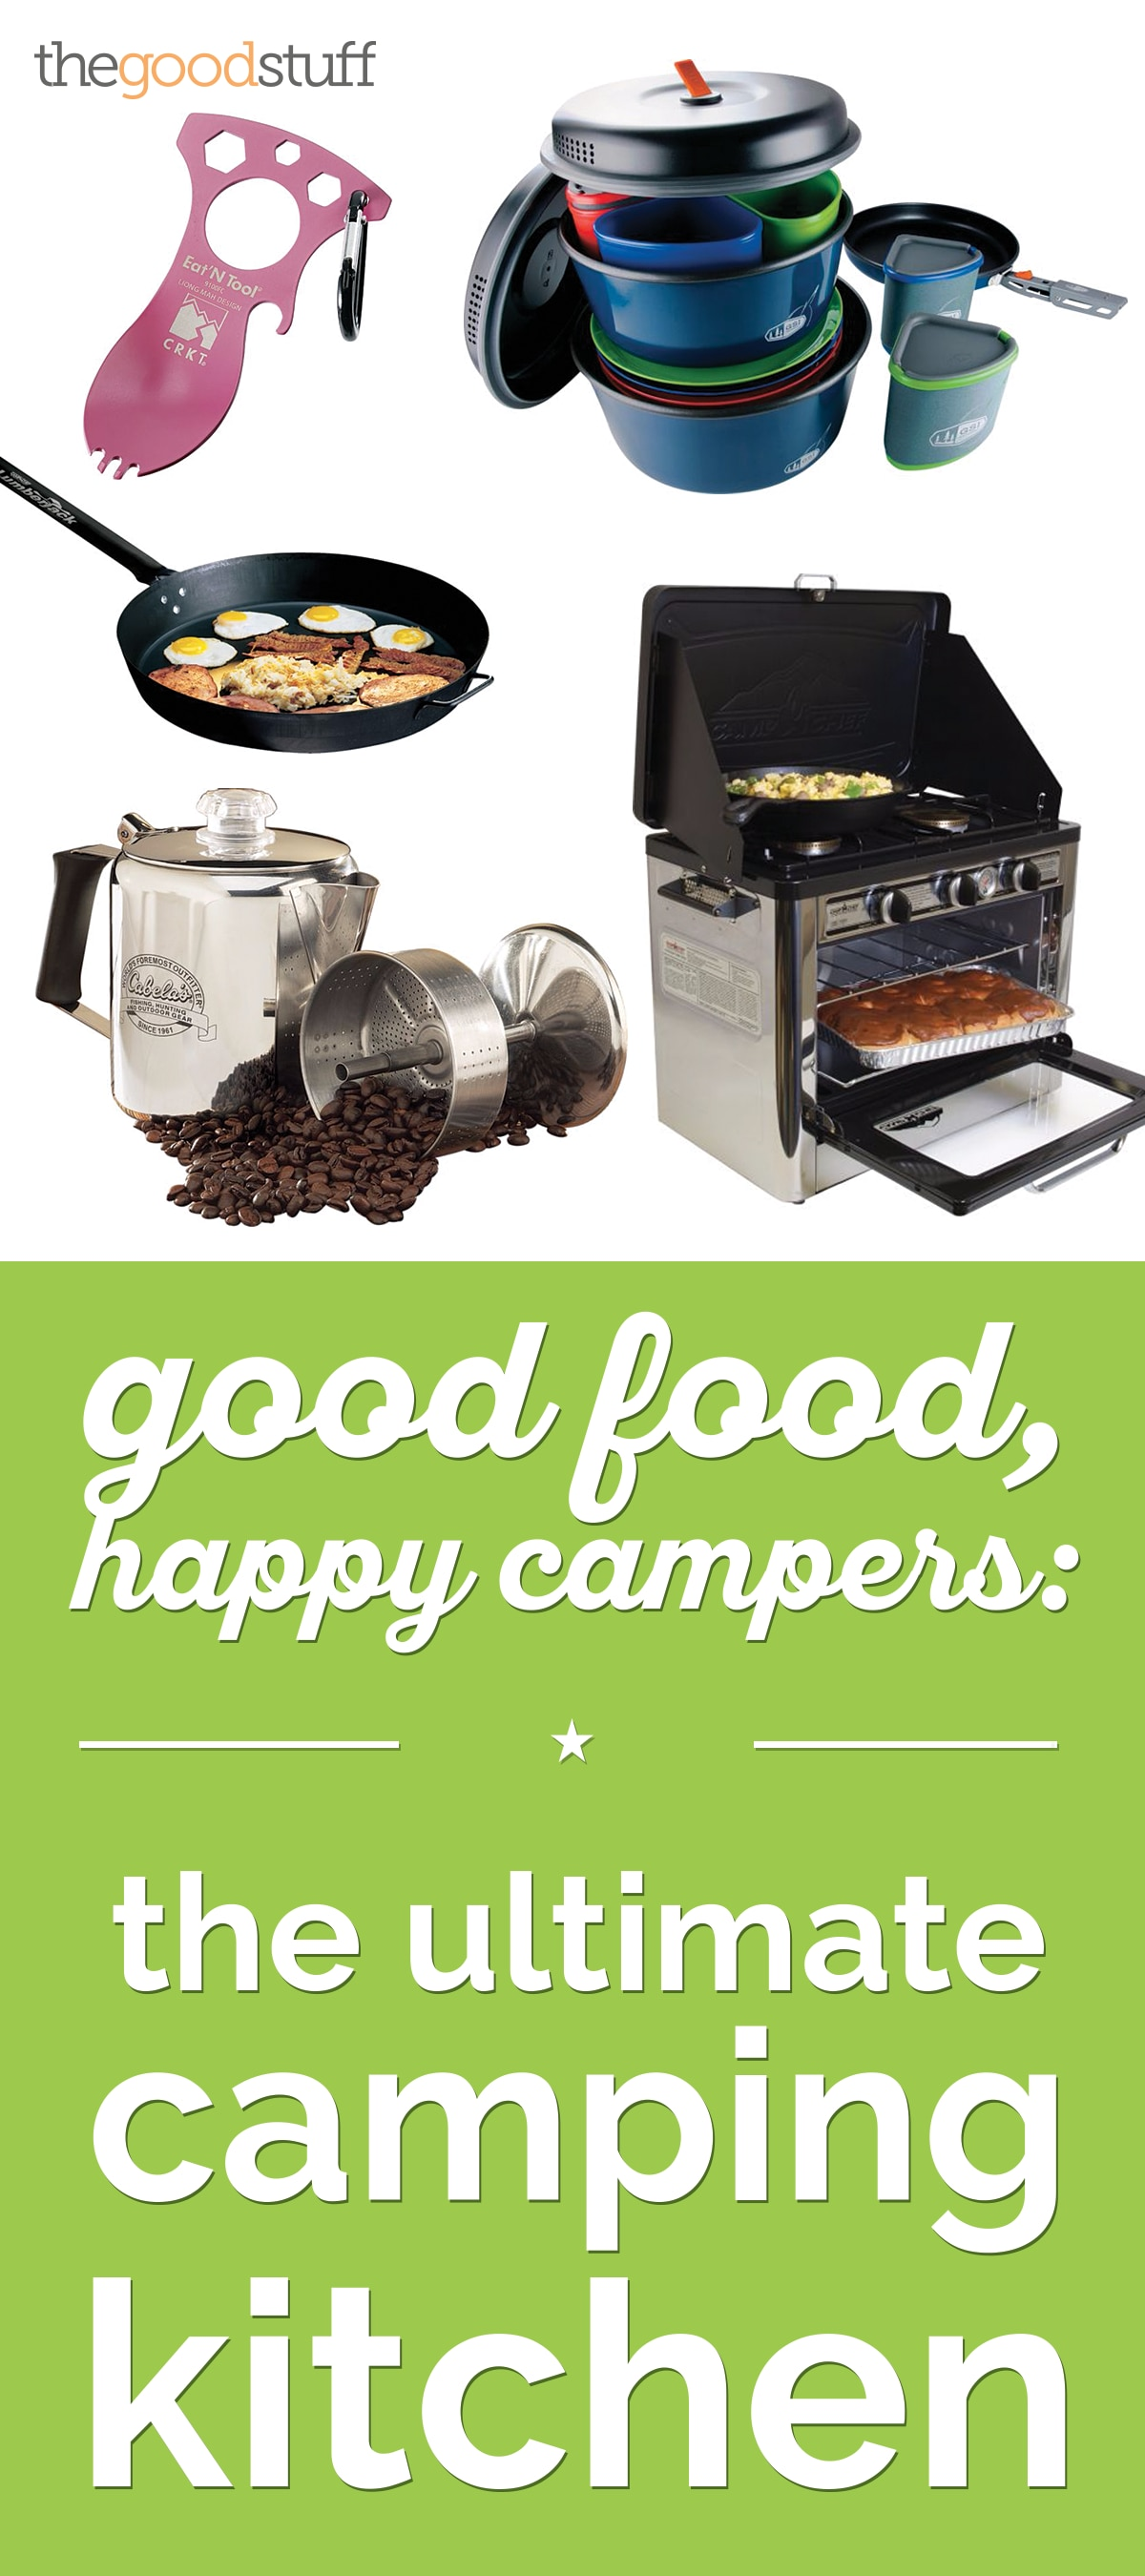 Good Food, Happy Campers: The Ultimate Camping Kitchen | thegoodstuff